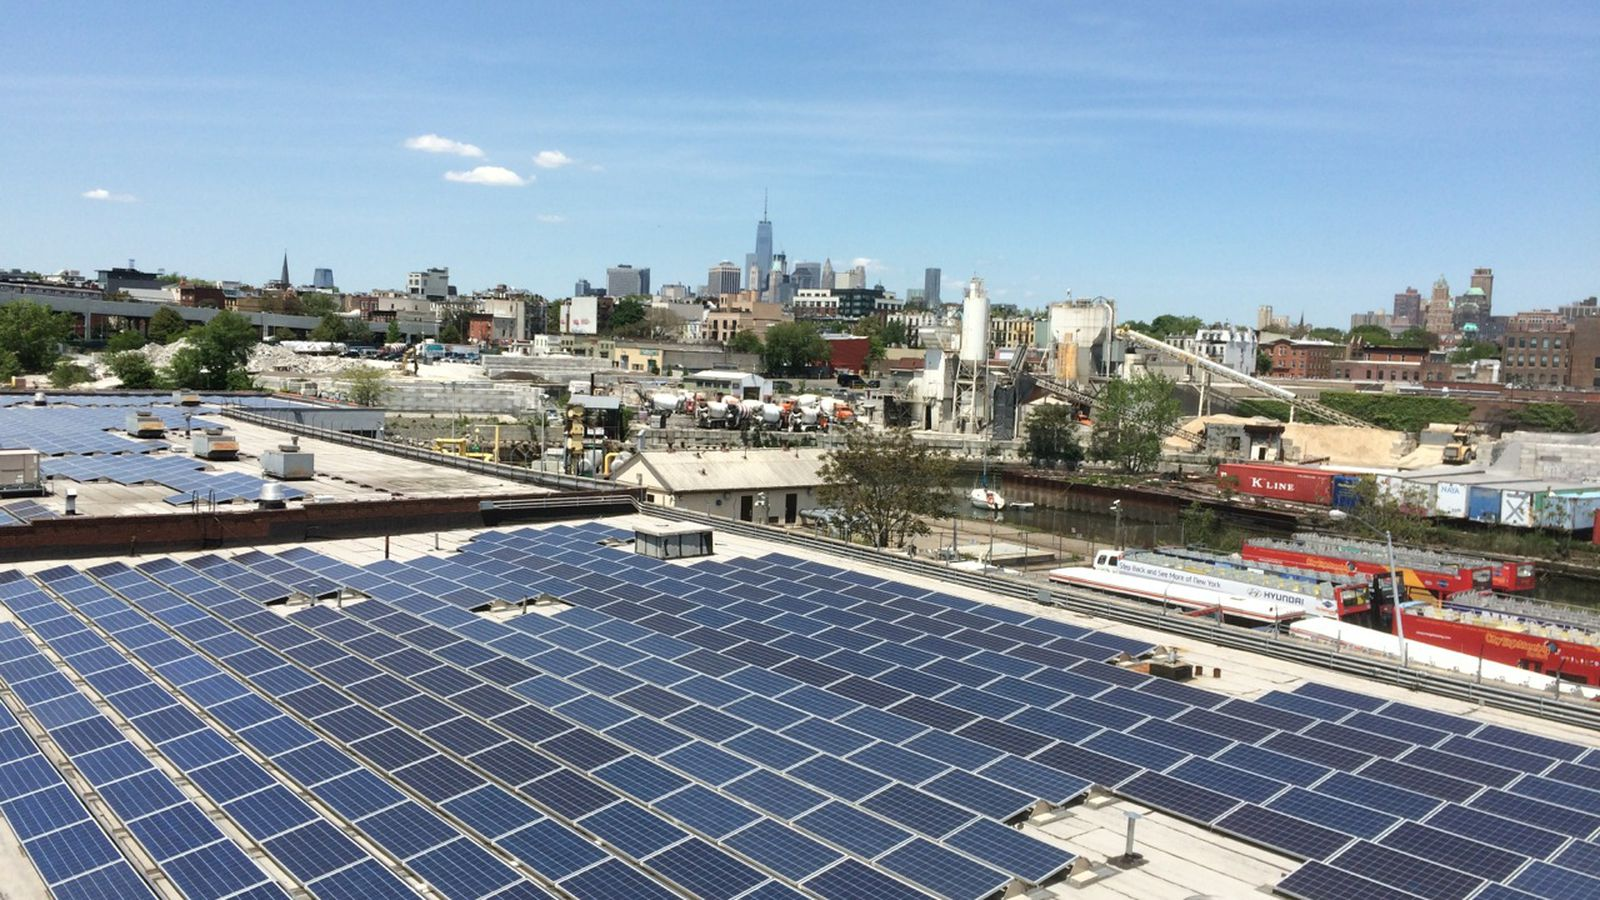 Solar Power S Future May Be On These Brooklyn Rooftops